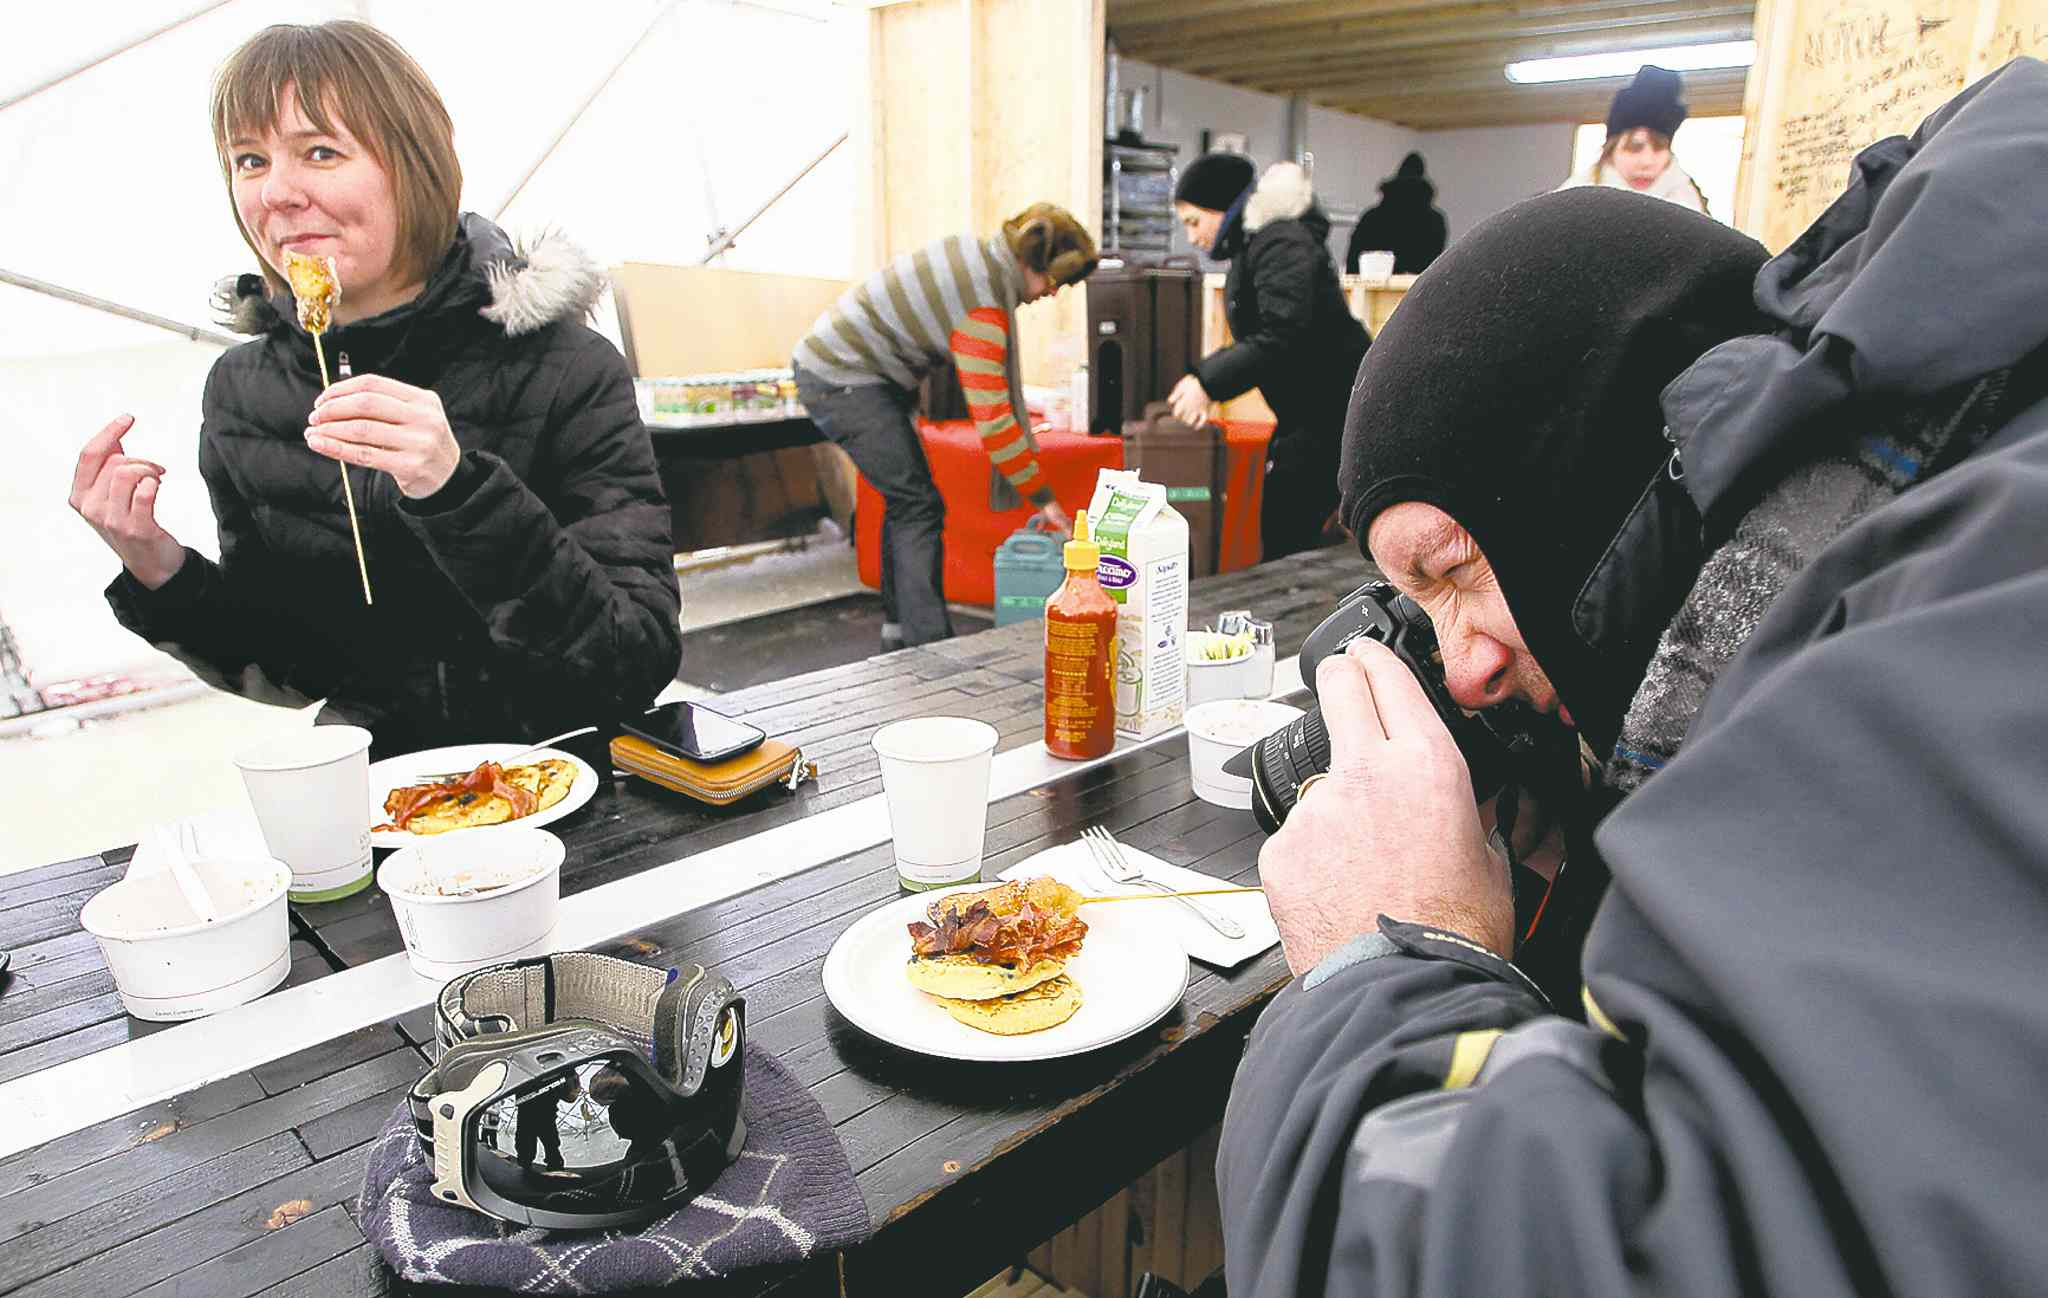 Brent Lelond takes a photo of his brunch at the Raw: Almond pop-up restaurant on the river ice at The Forks on Sunday as another customer enjoys her food.